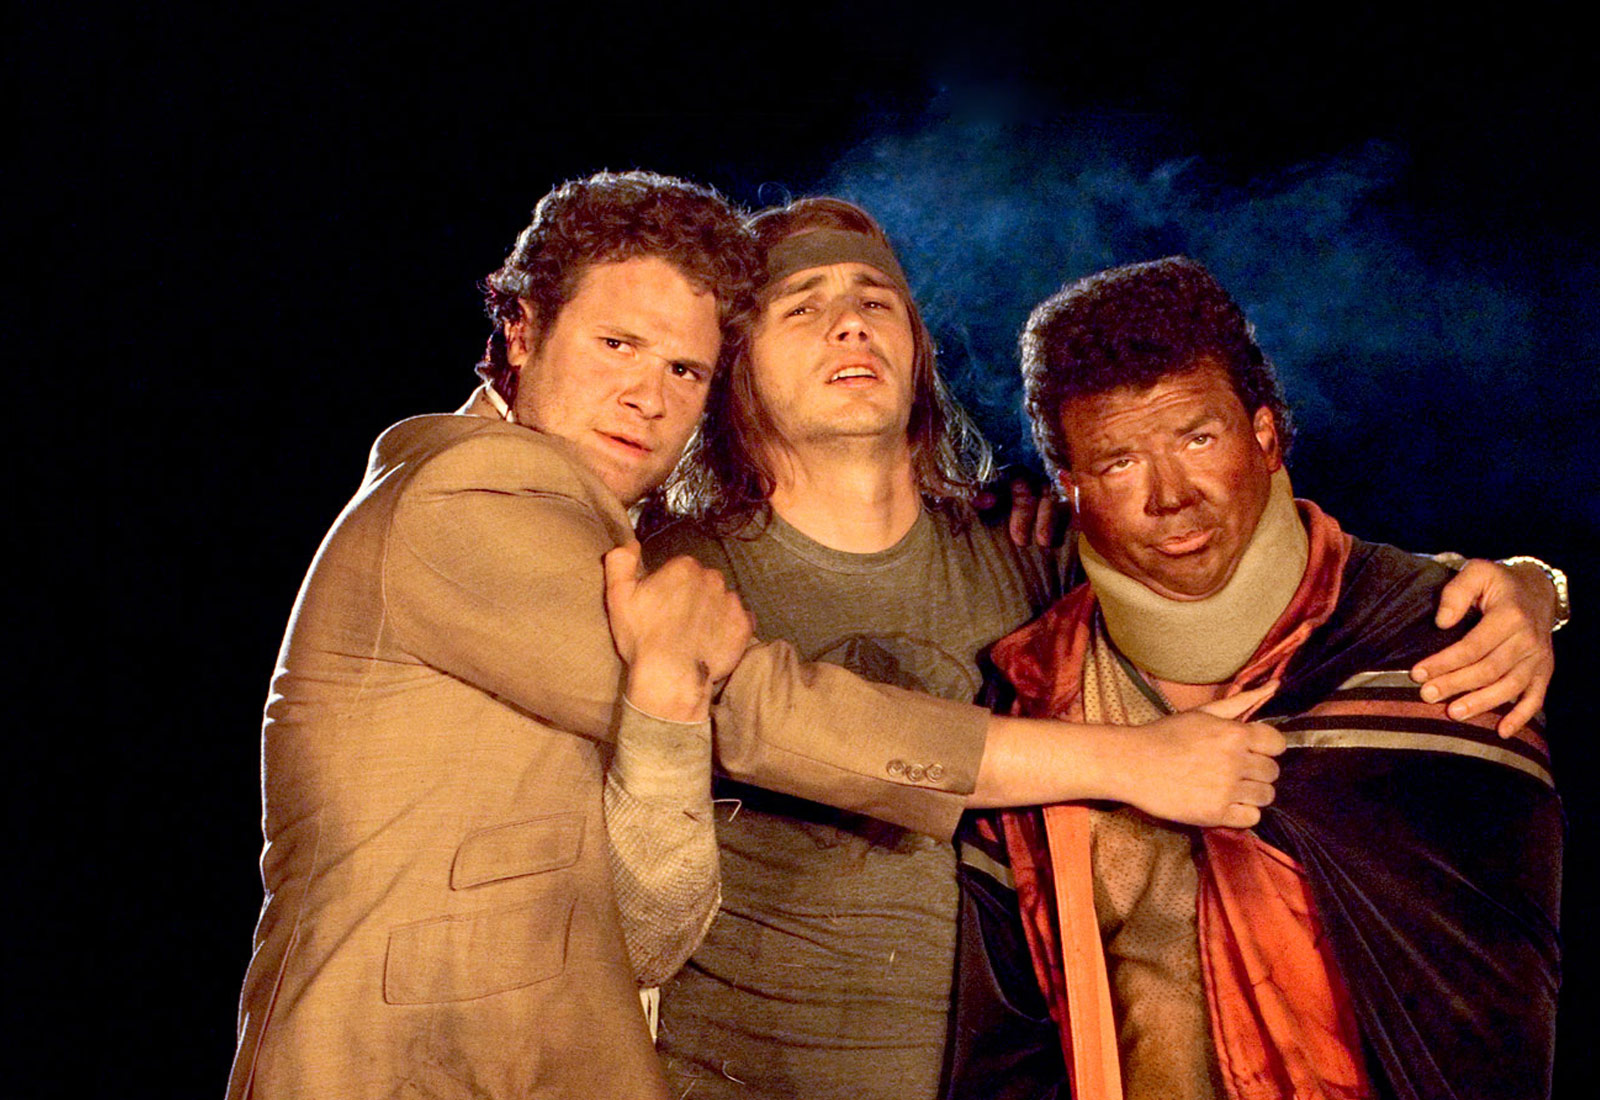 Watch Pineapple Express Prime Video